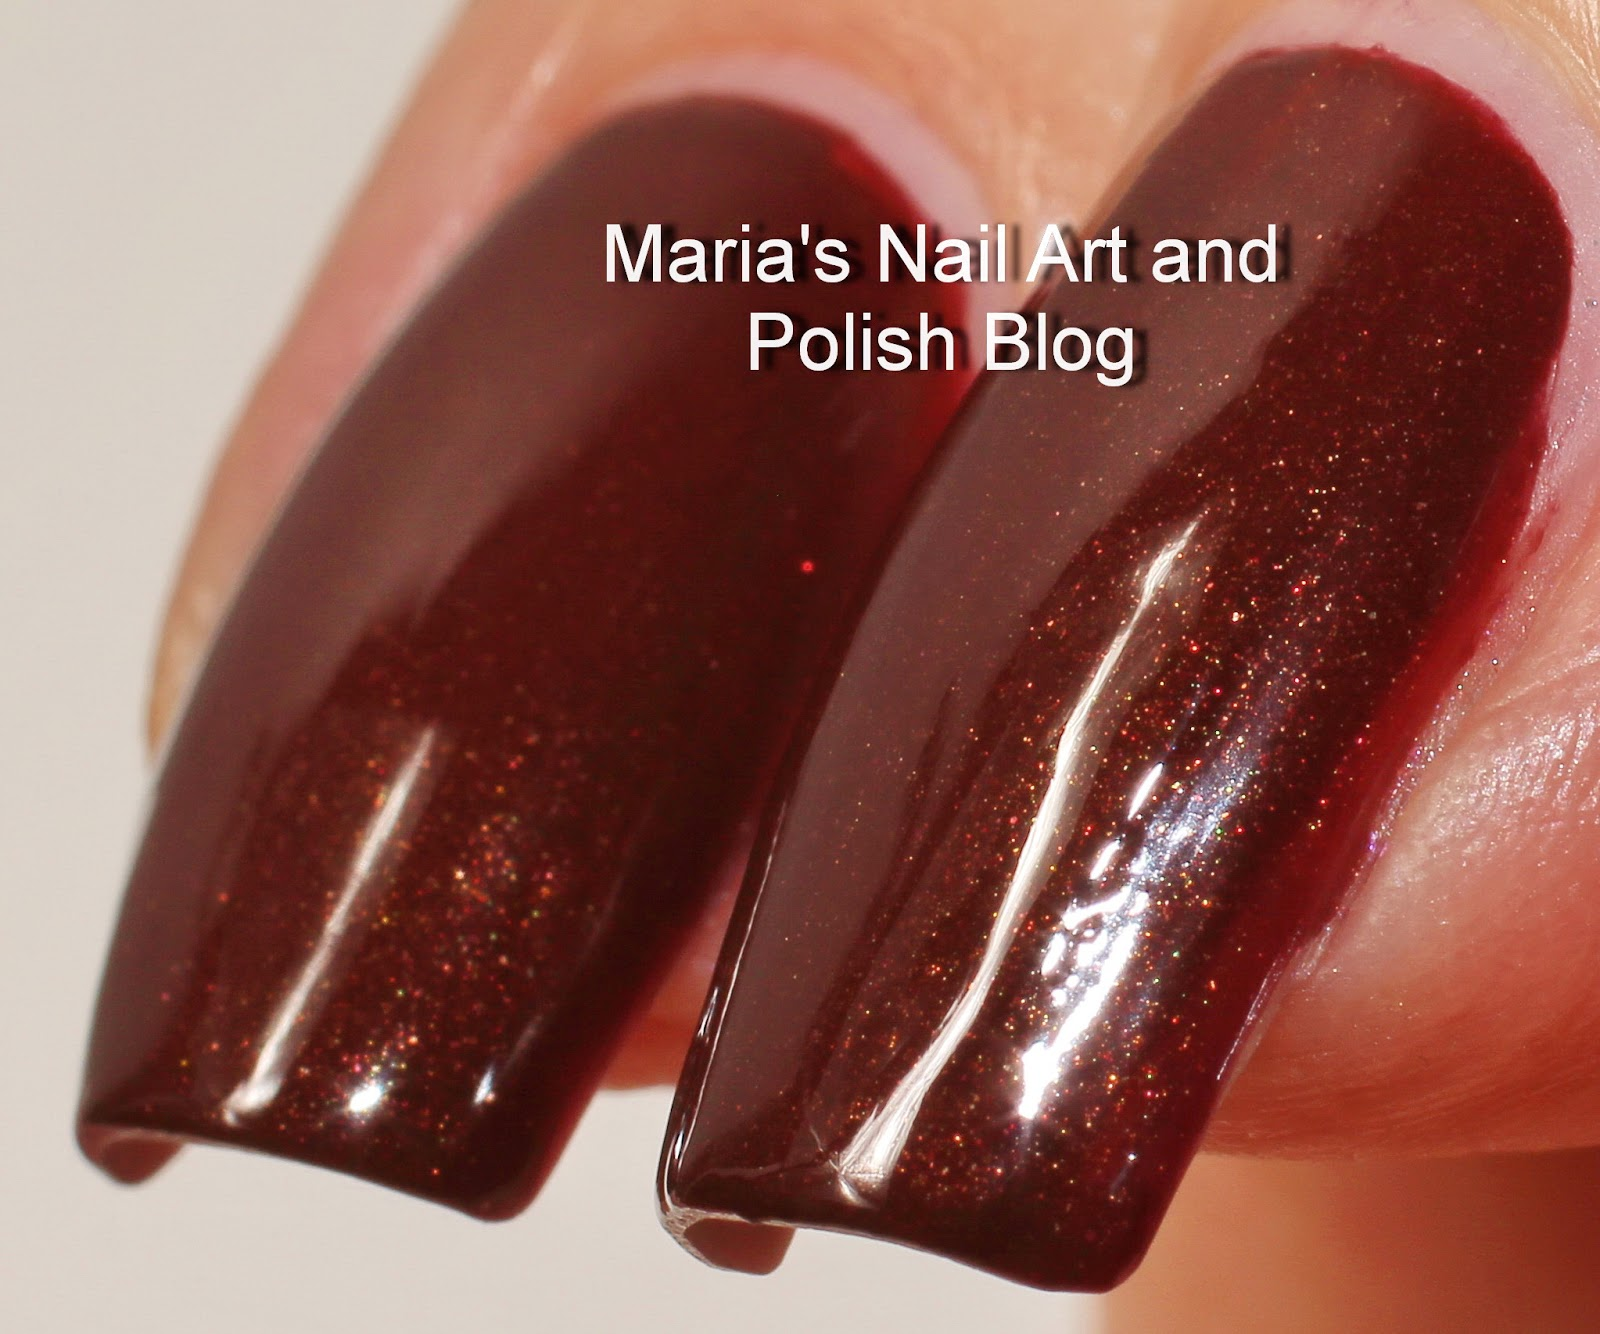 Marias Nail Art And Polish Blog: Chanel Rouge Argent